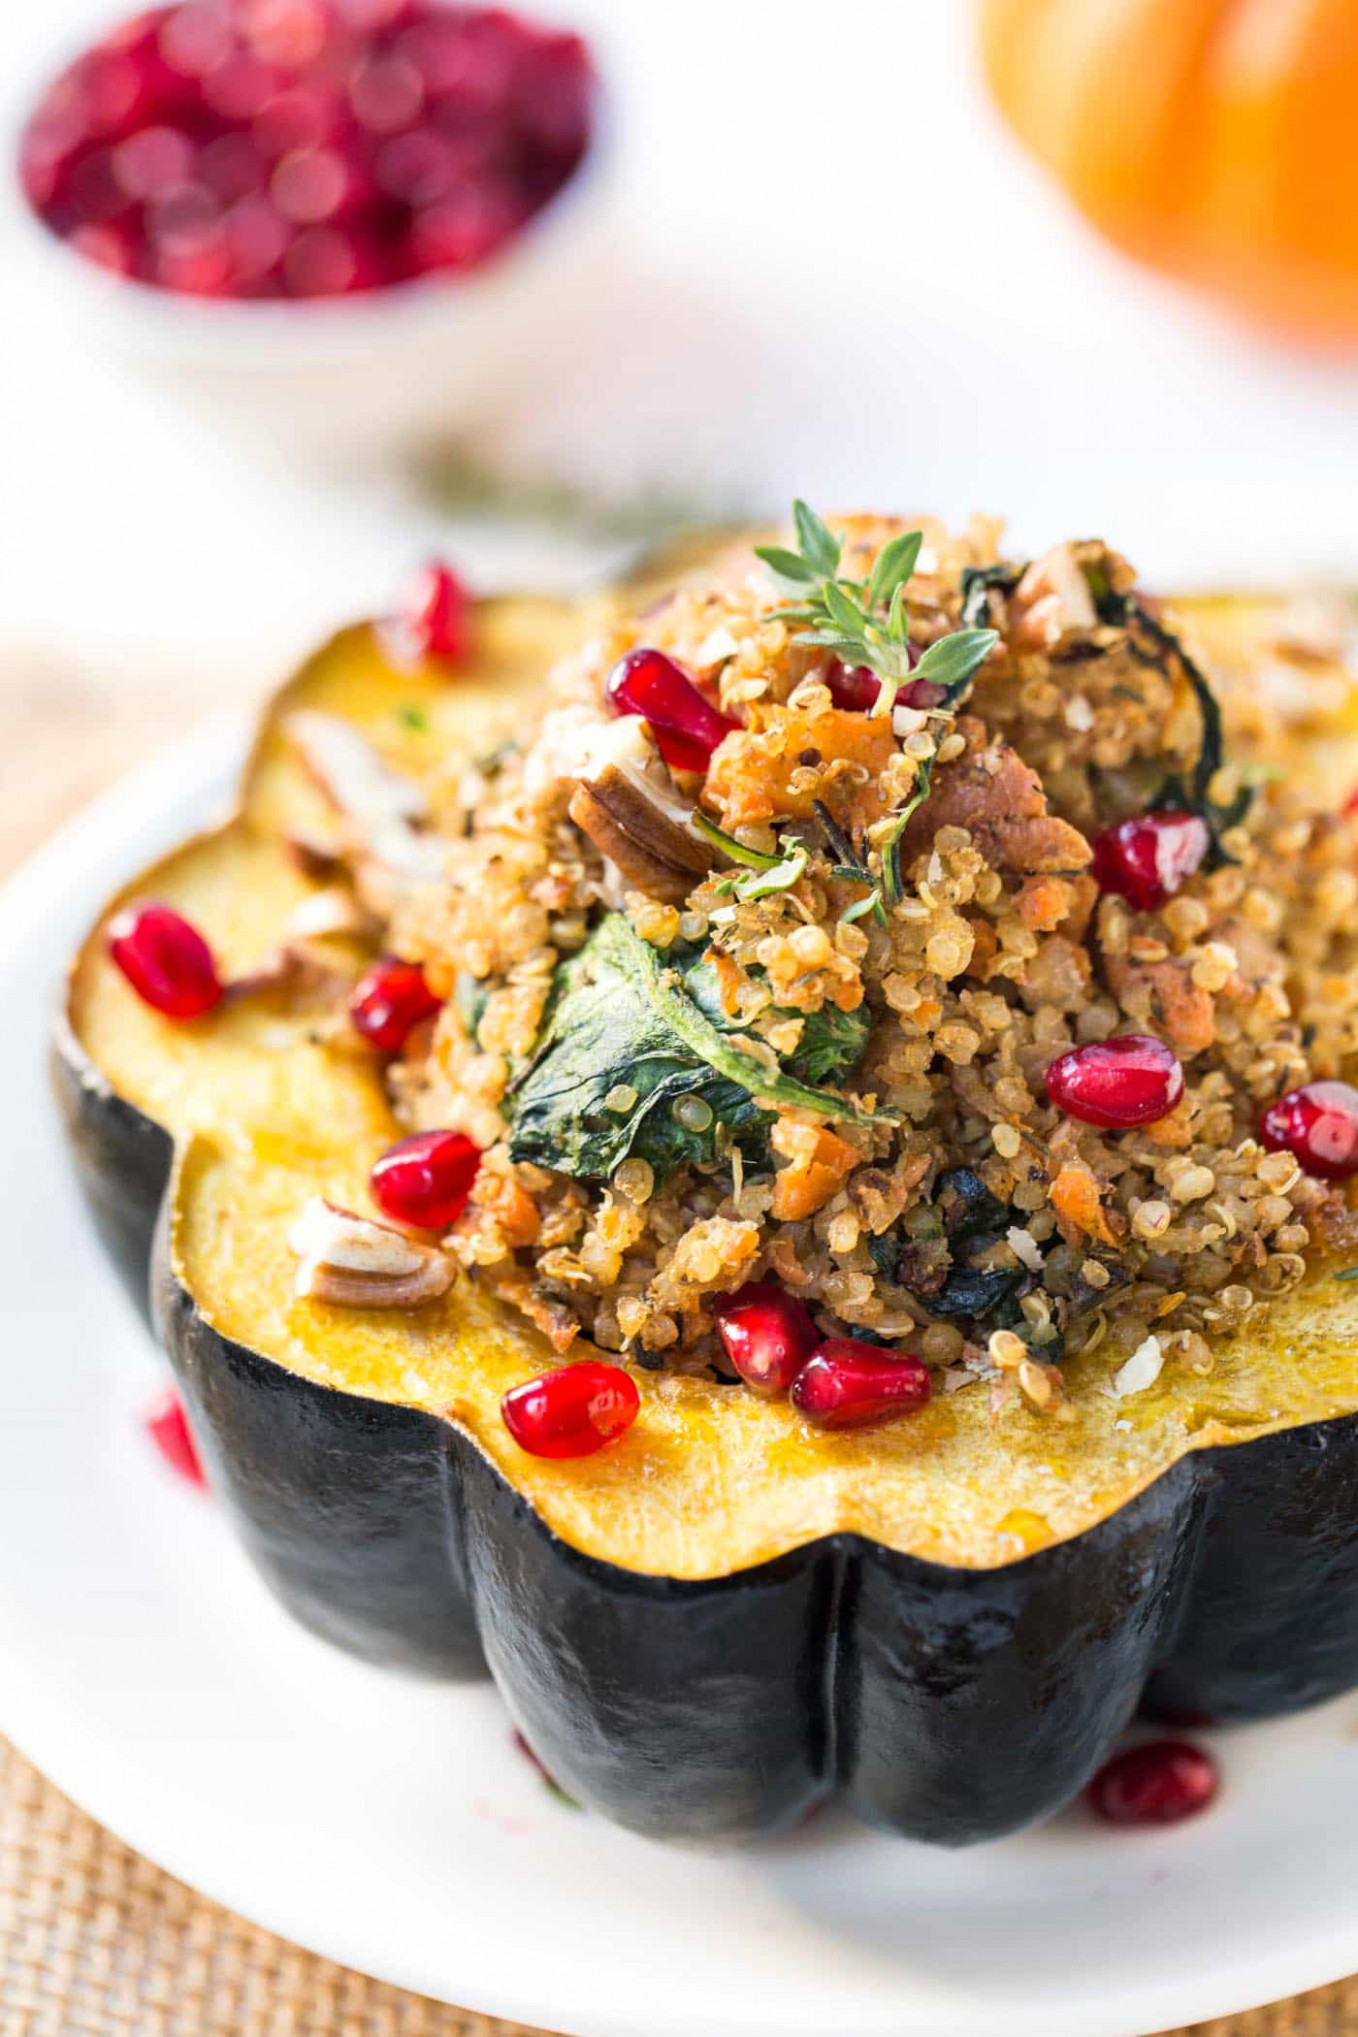 Mushroom & Quinoa Stuffed Acorn Squash - Recipe Vegetarian Quinoa Stuffing